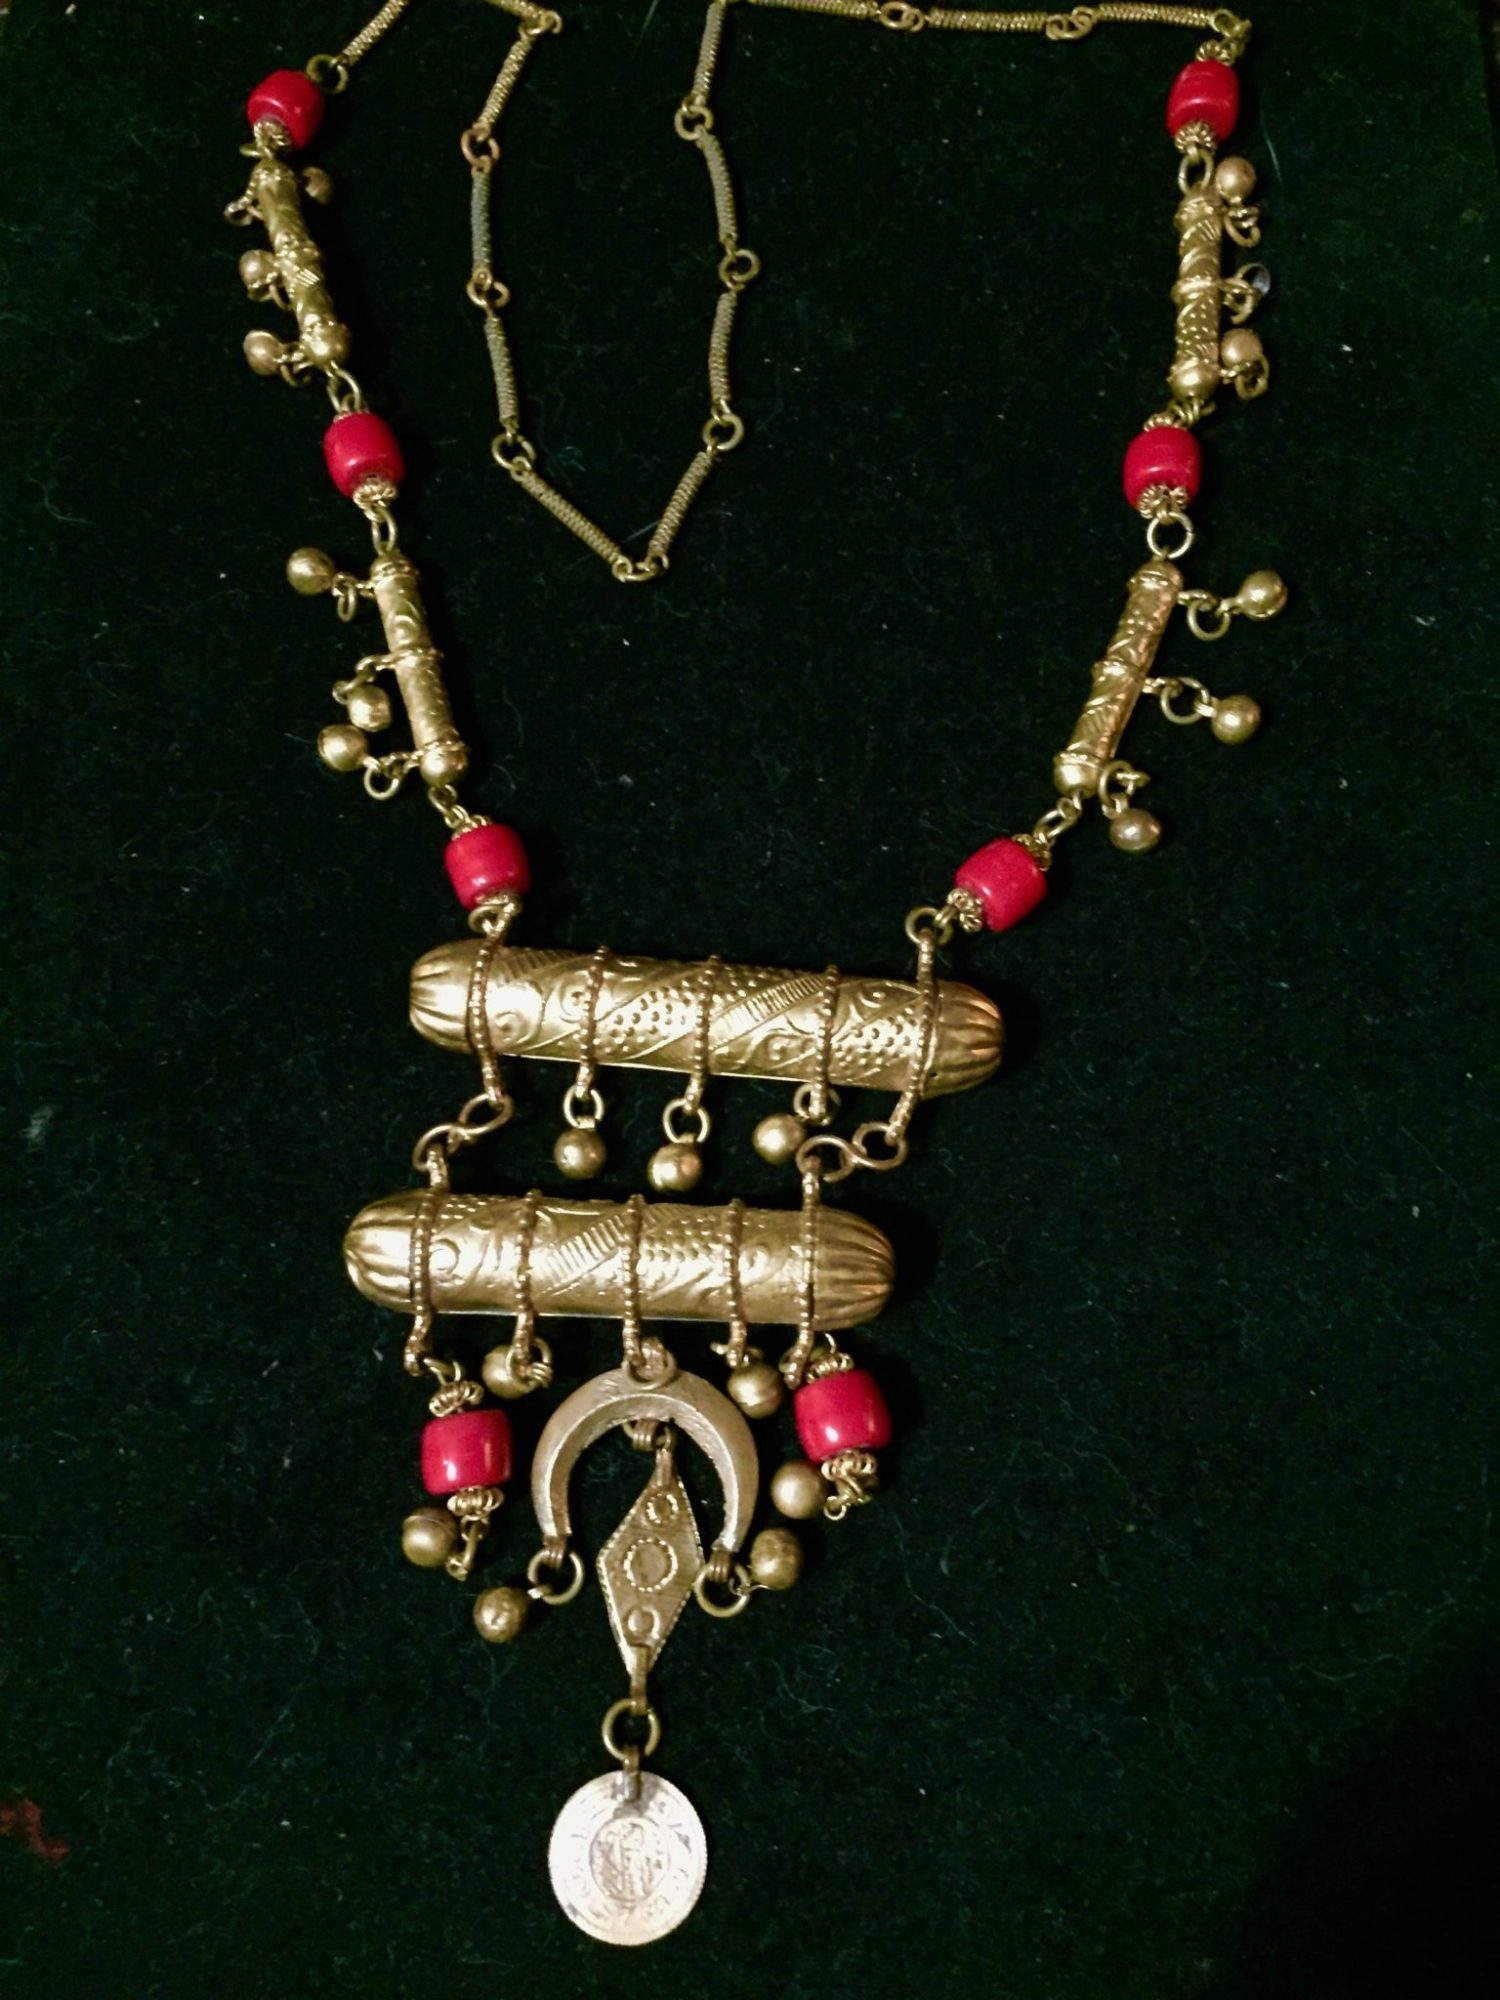 IMG 1218 e1561270627142 - Jewelry: Egyptian Necklace